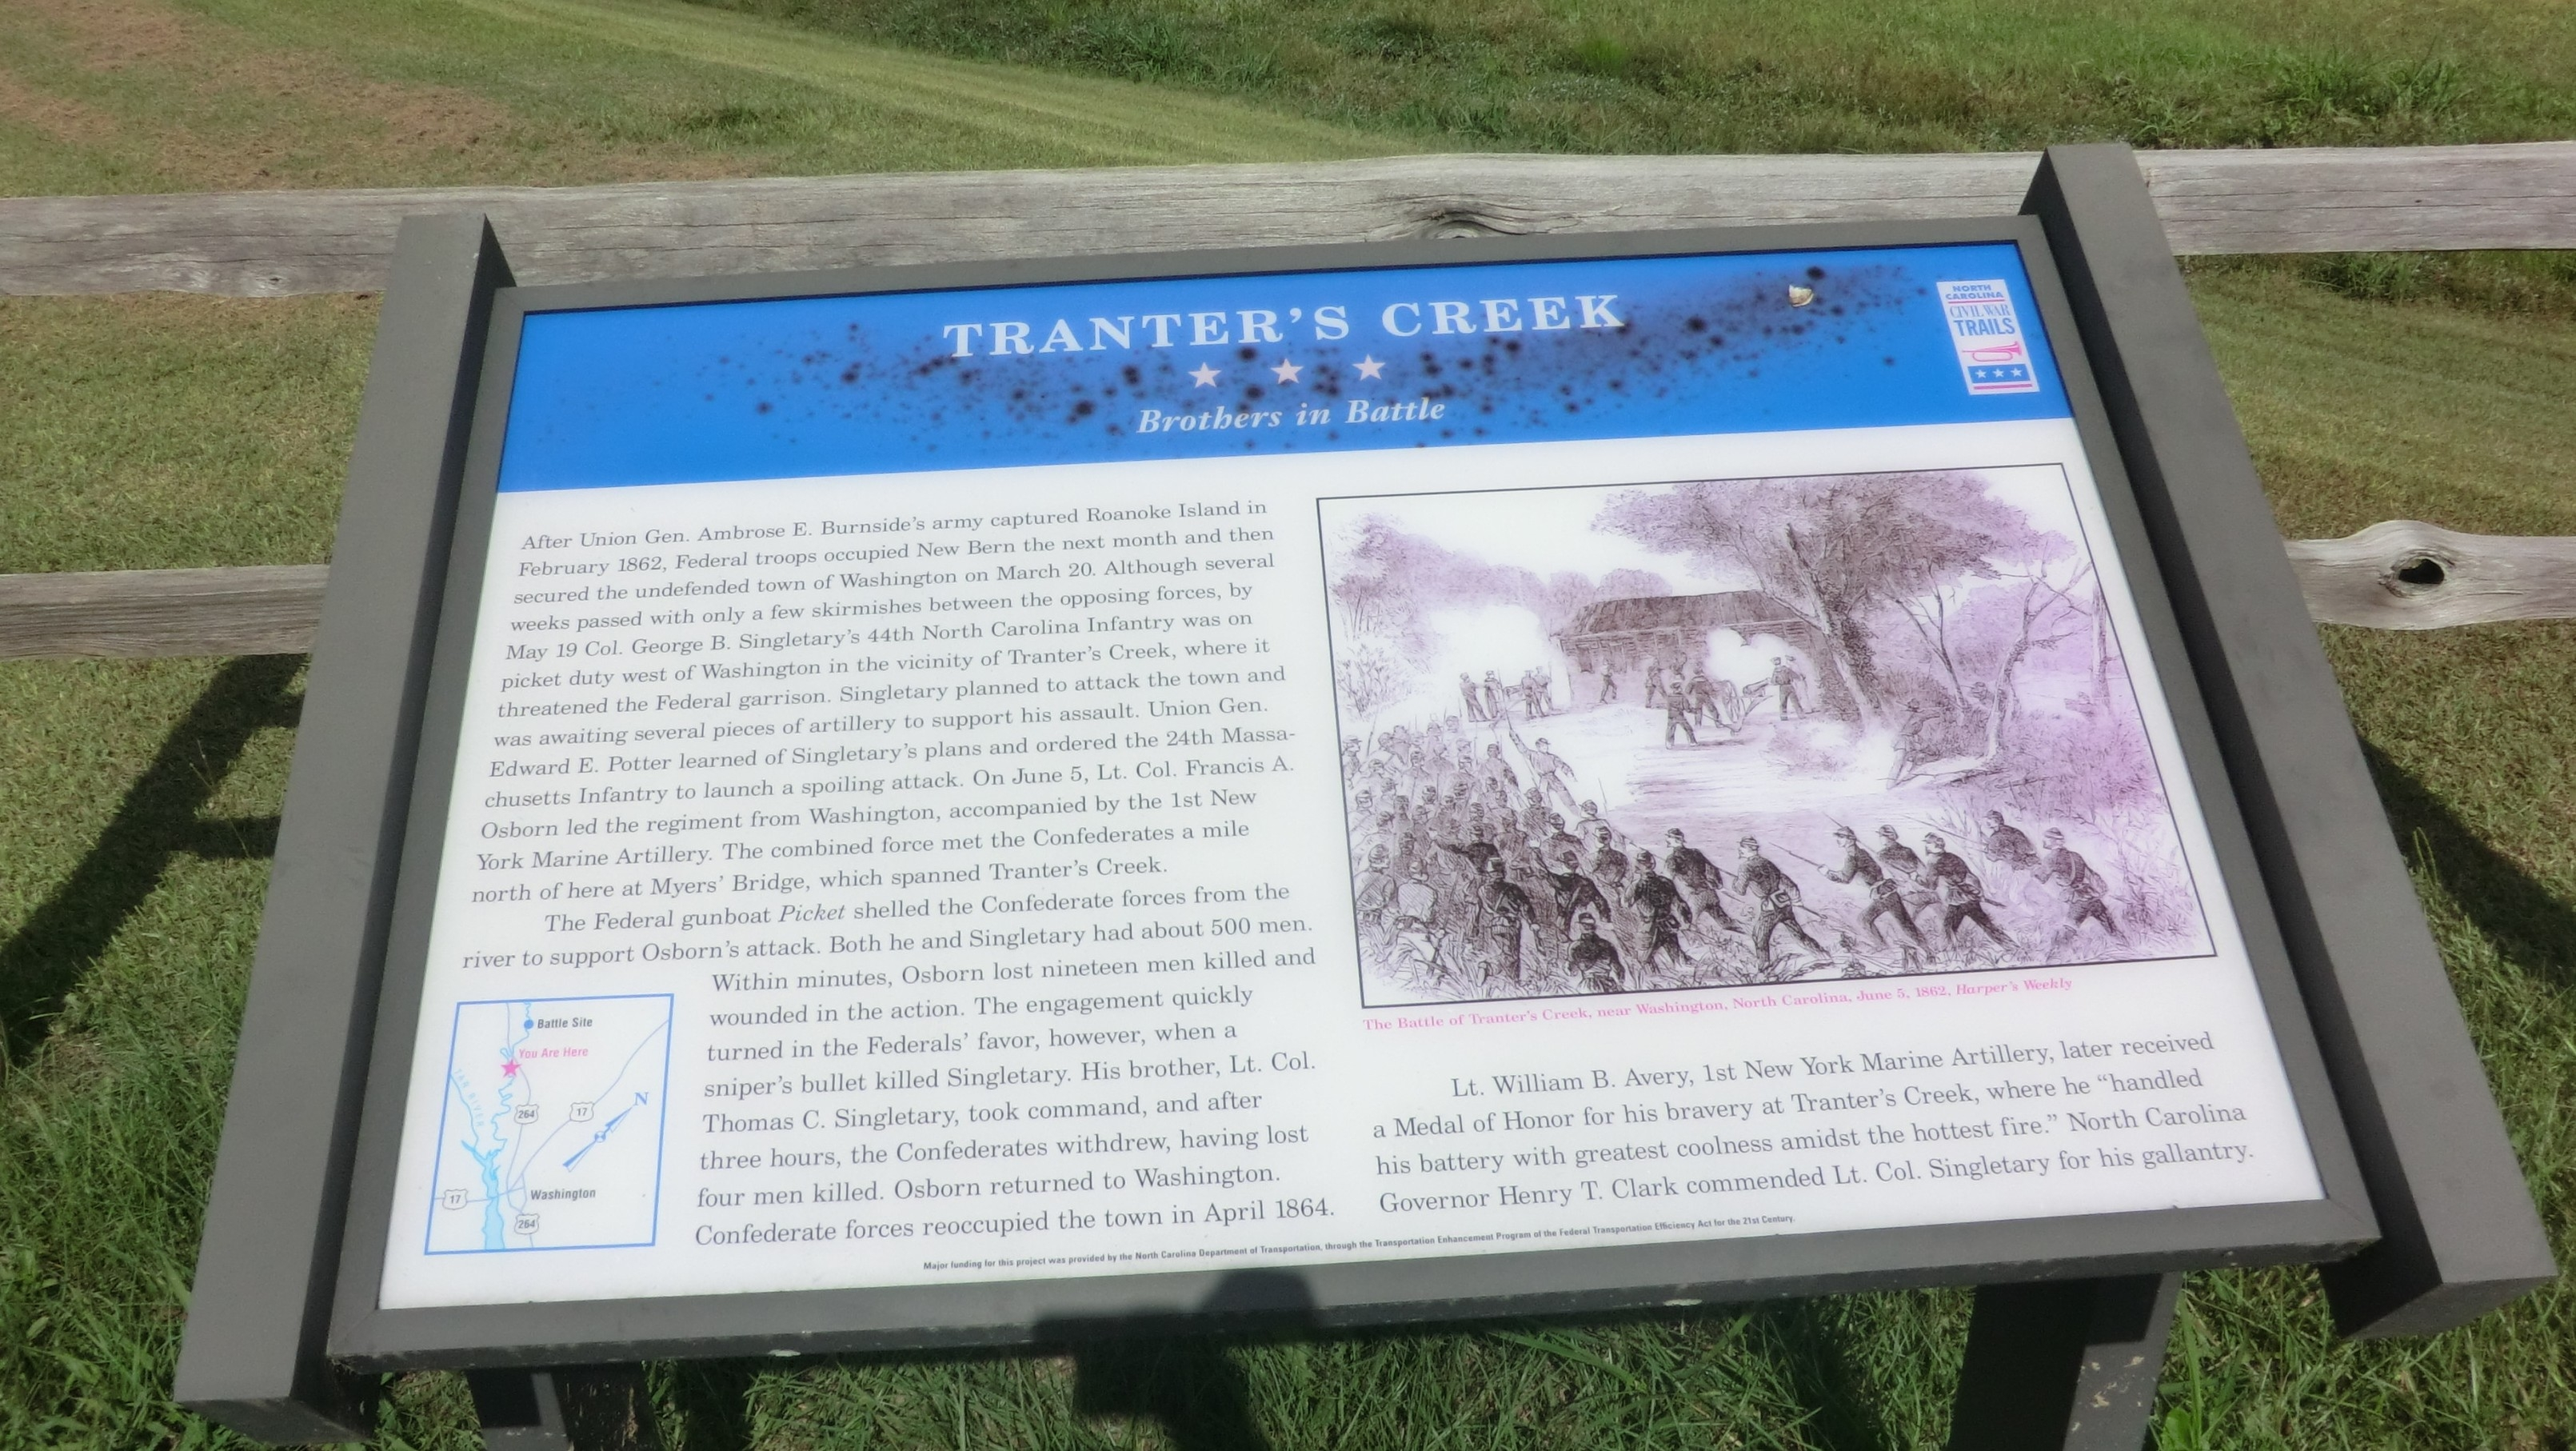 Tranter's Creek marker is located in Beaufort County, North Carolina and was installed in December 2007. It is located on the south side of U.S. Highway 264, about eight miles west of Washington and about one mile south of the battle site.